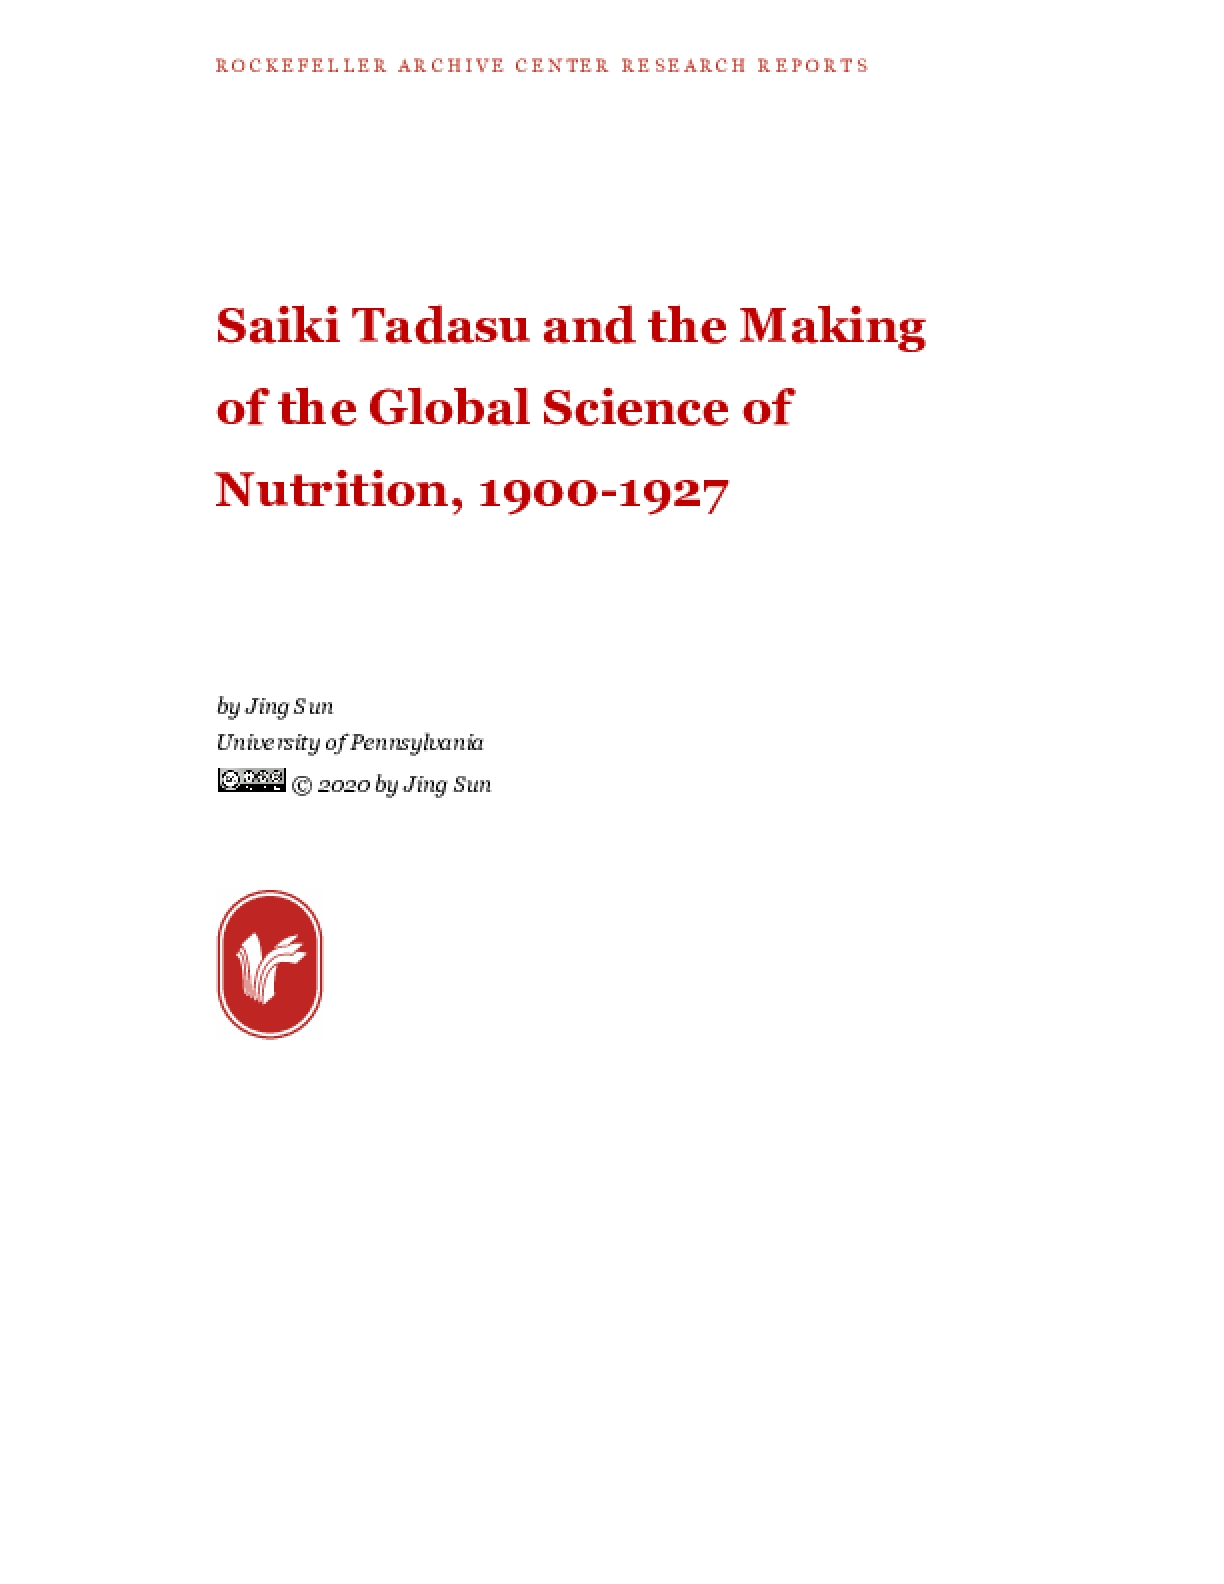 Saiki Tadasu and the Making of the Global Science of Nutrition, 1900-1927